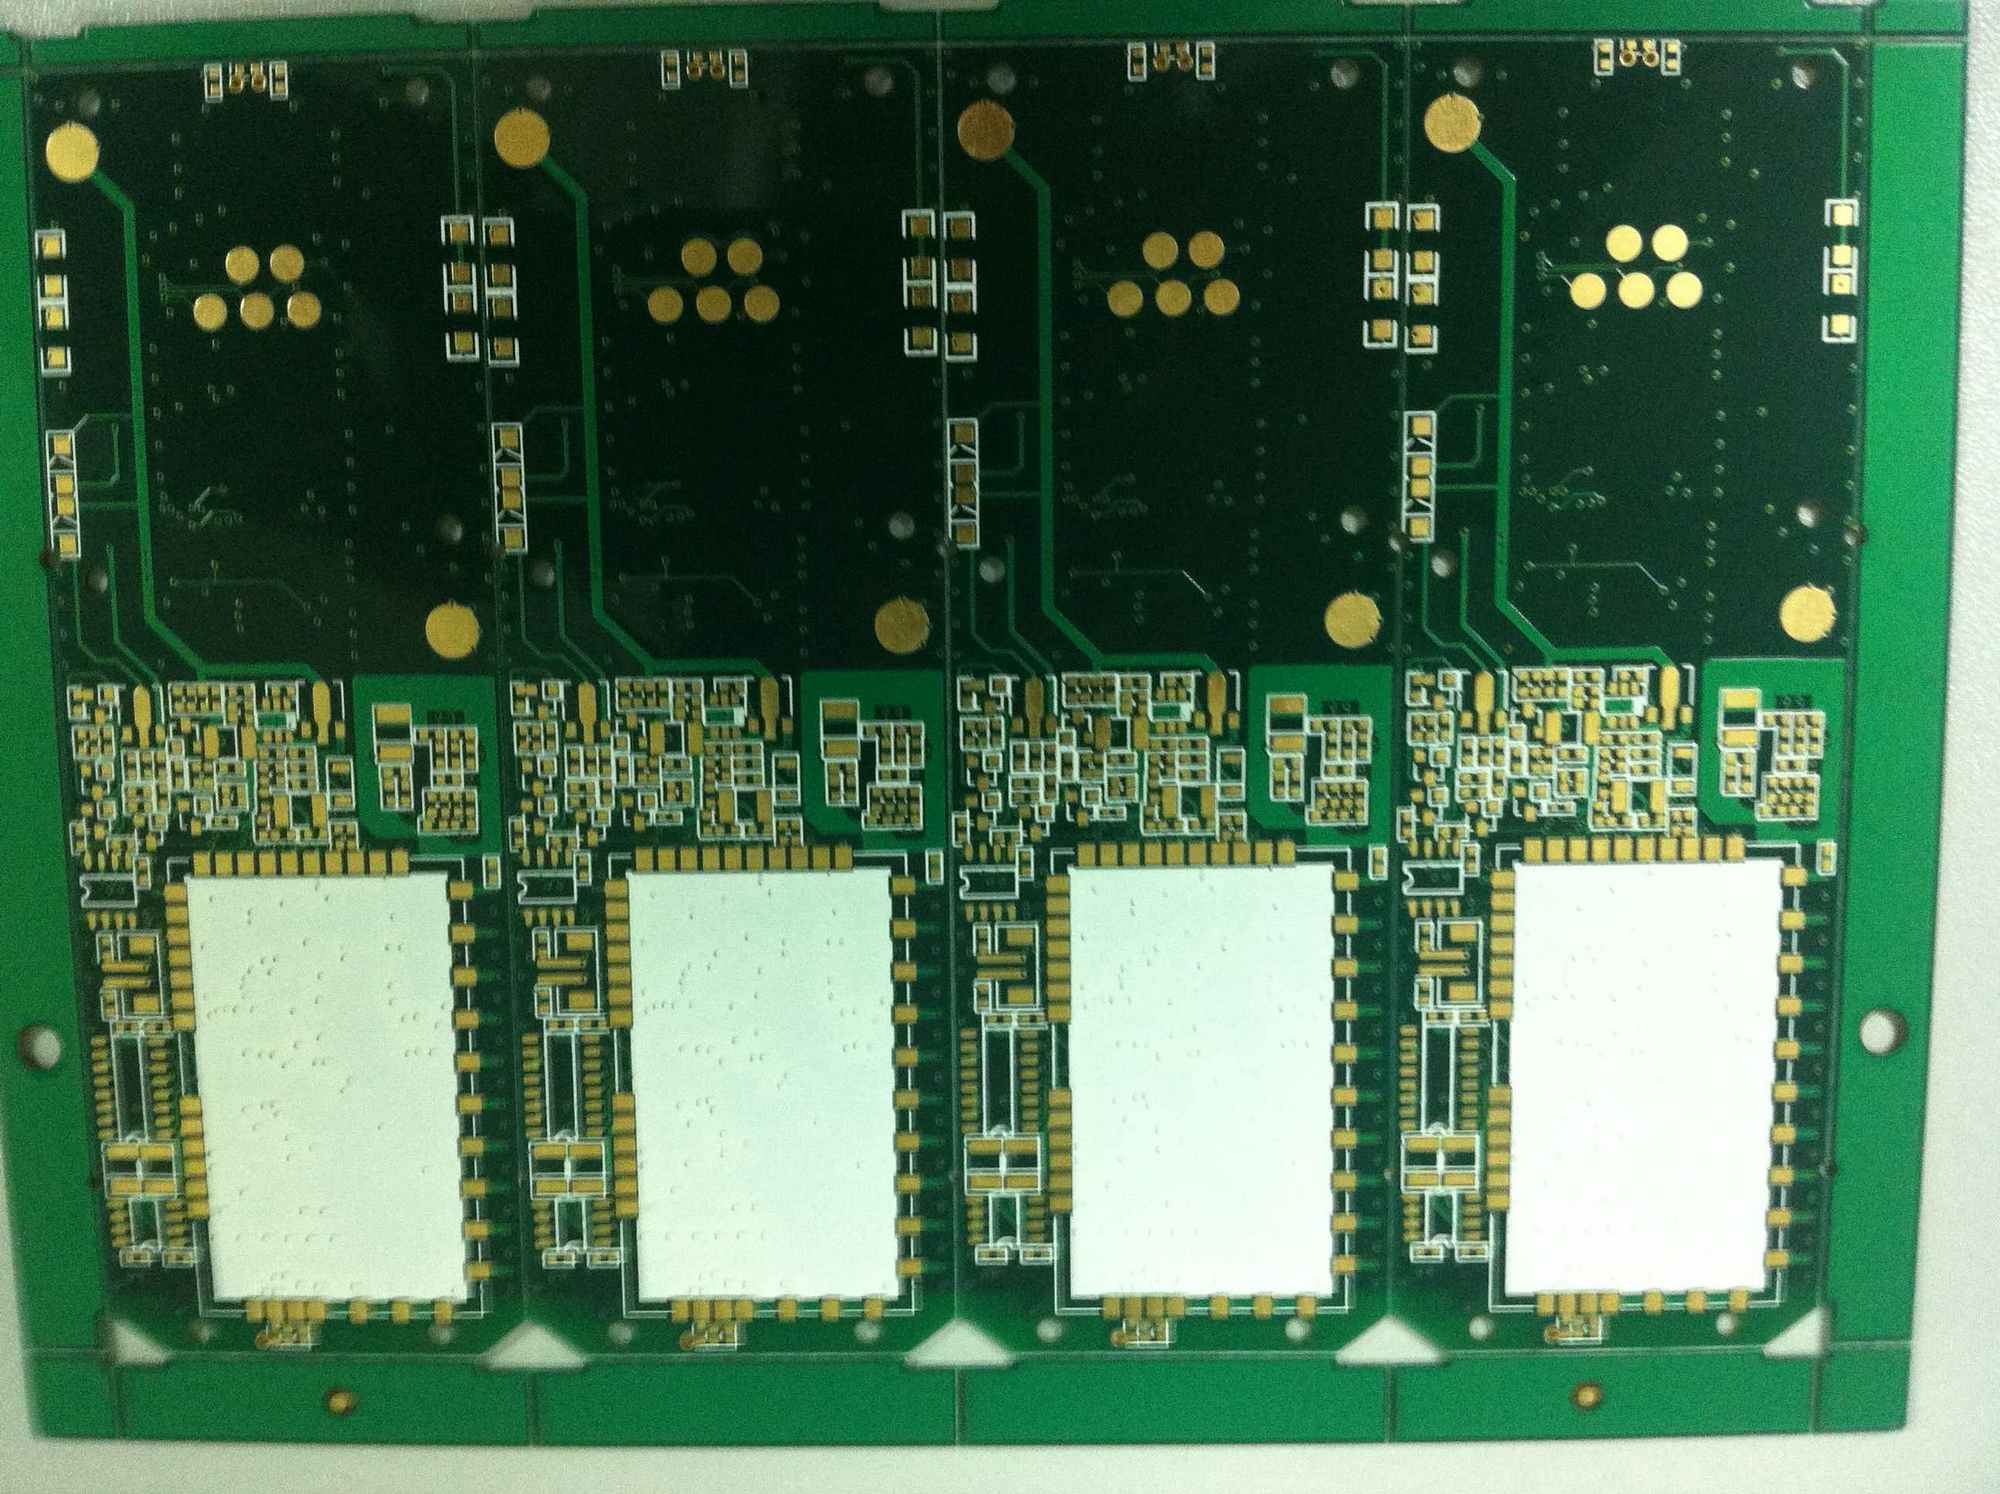 Electrical Equipment Components Telecomspassive Componentspcb Printed Circuit Good Quality Blank Pcb Boards From Shenzhen Buy Product Thumnail Image